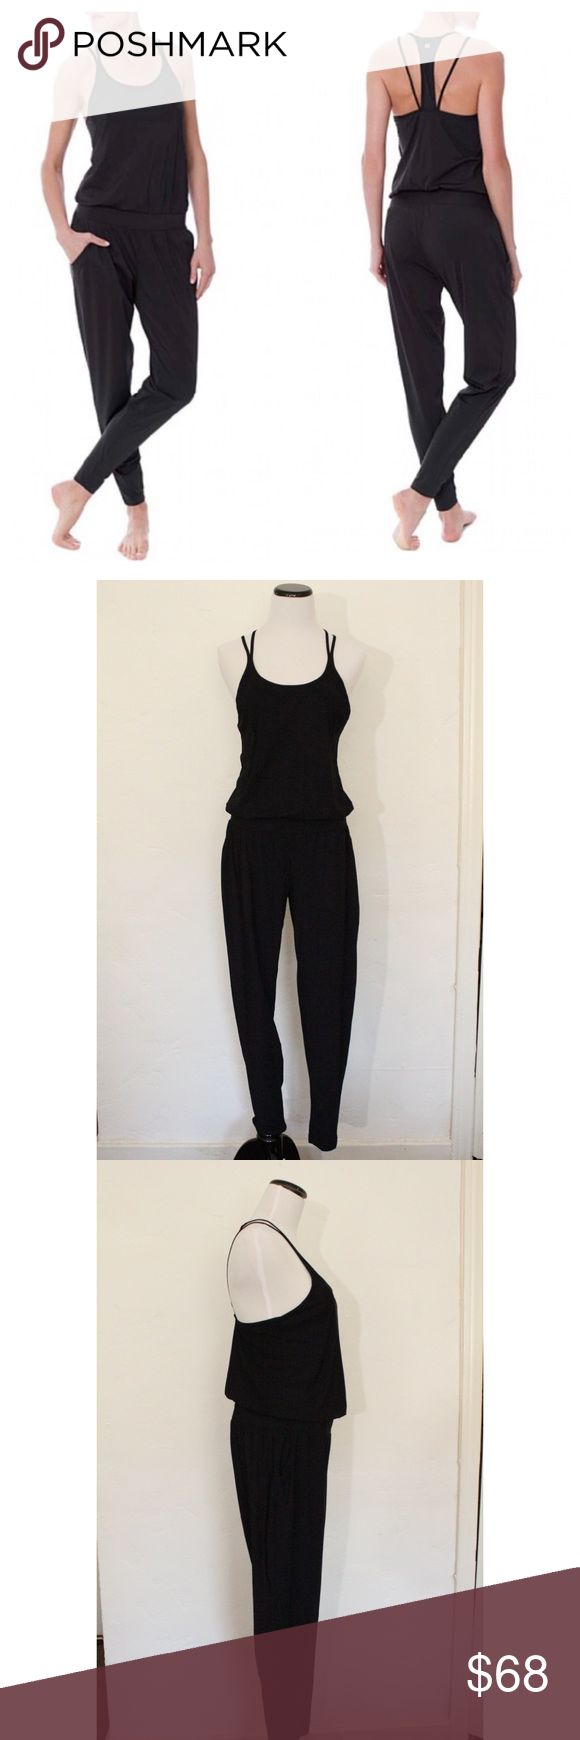 Sweaty Betty Supinity Jumpsuit Size M Sweaty Betty Sunipity Black Yoga Jumpsuit. Perfect for running errands and getting in a quick yoga session. Excellent pre-owned condition. No pilling, no holes, and no stains. Size Medium. No trades. Please feel free to ask any questions. Sweaty Betty Pants Jumpsuits & Rompers